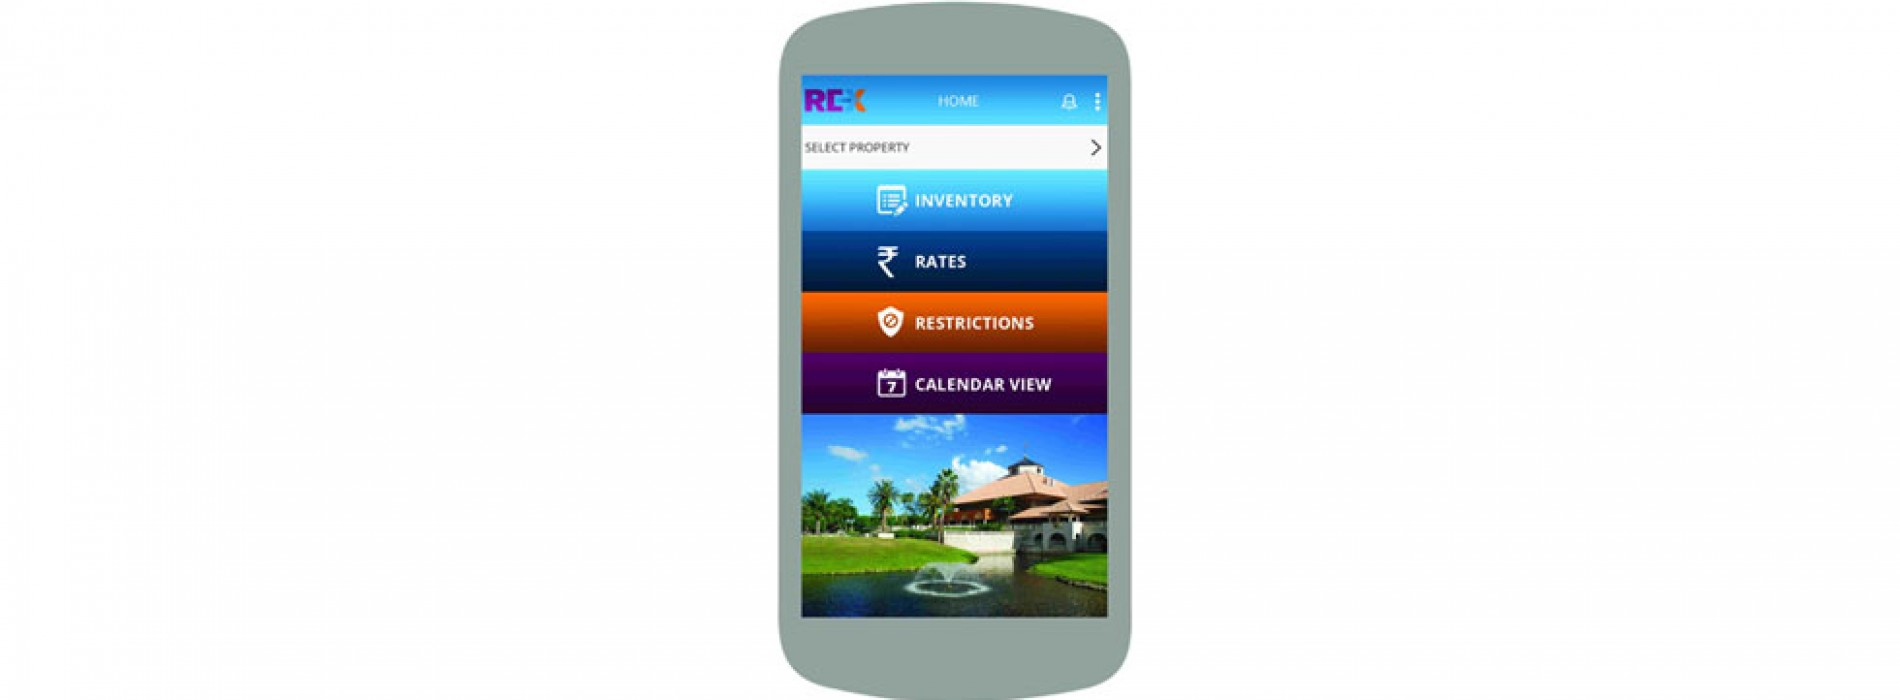 RezNext's purpose-built mobile distribution application sees increased adoption by leading hoteliers